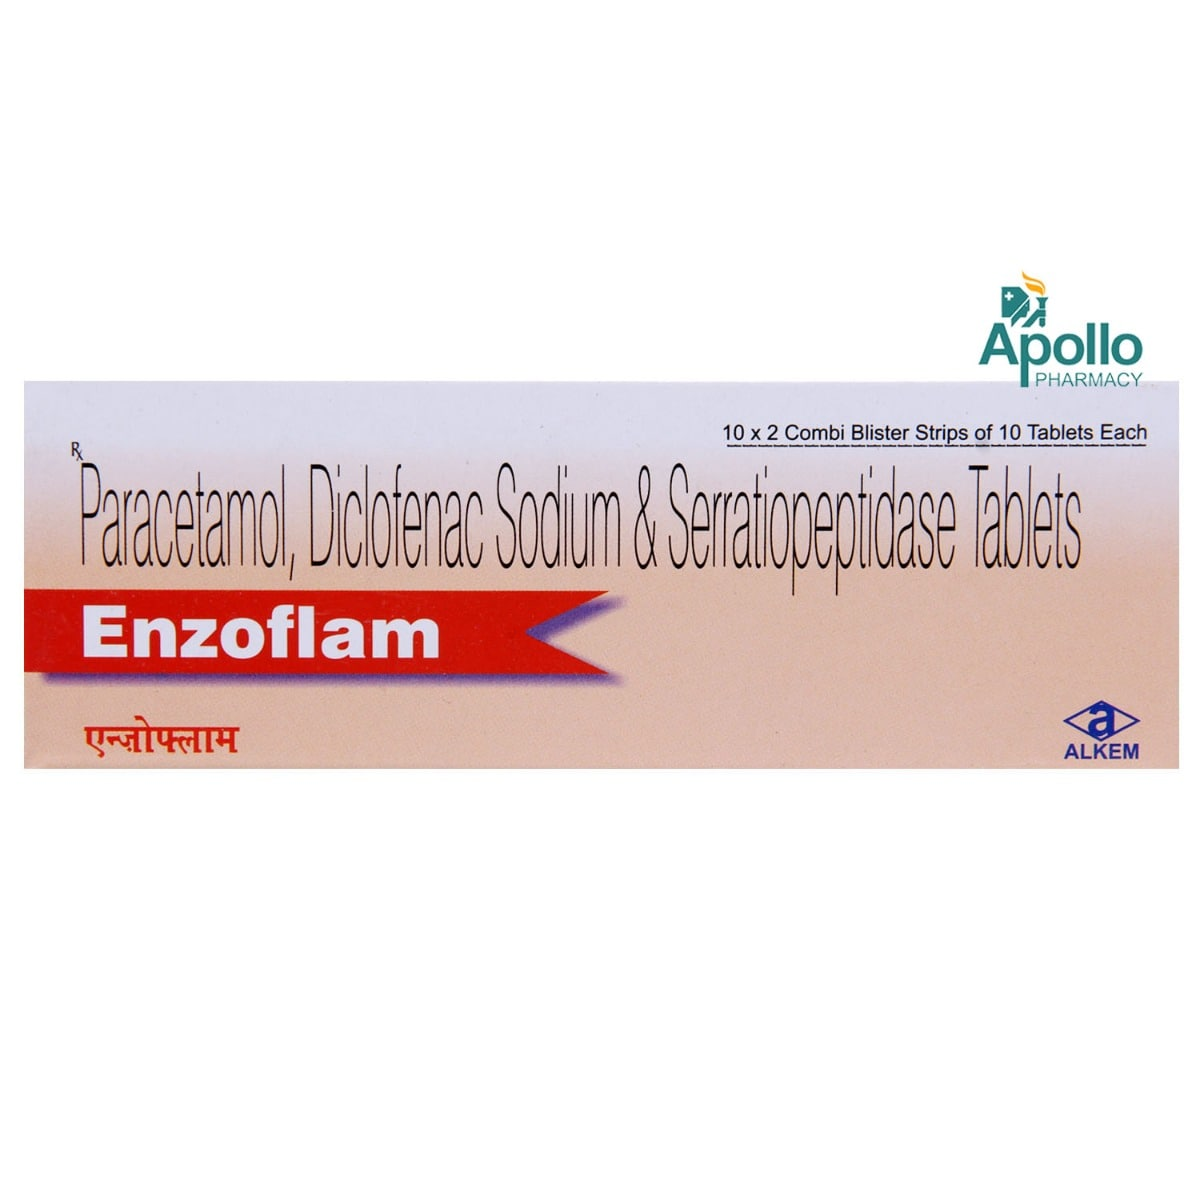 Enzoflam Tablet 10's